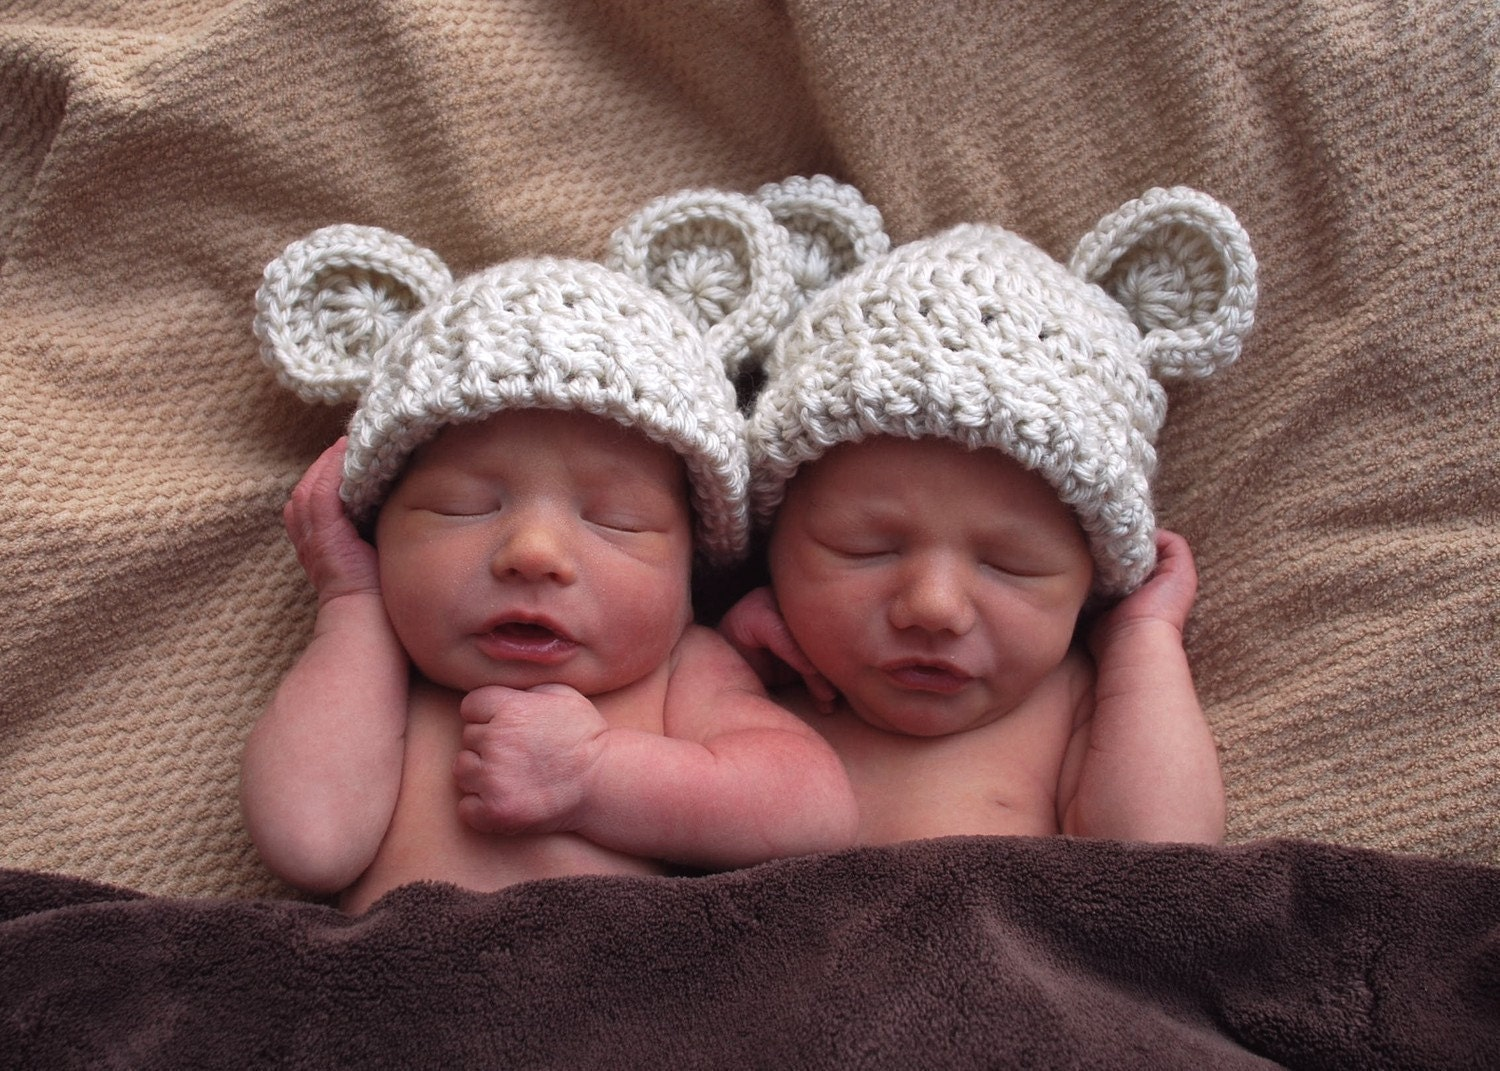 SALE-SET OF TWO-Adorable Crocheted Hat with Ears-0-3 months-in your color choices-MADE TO ORDER